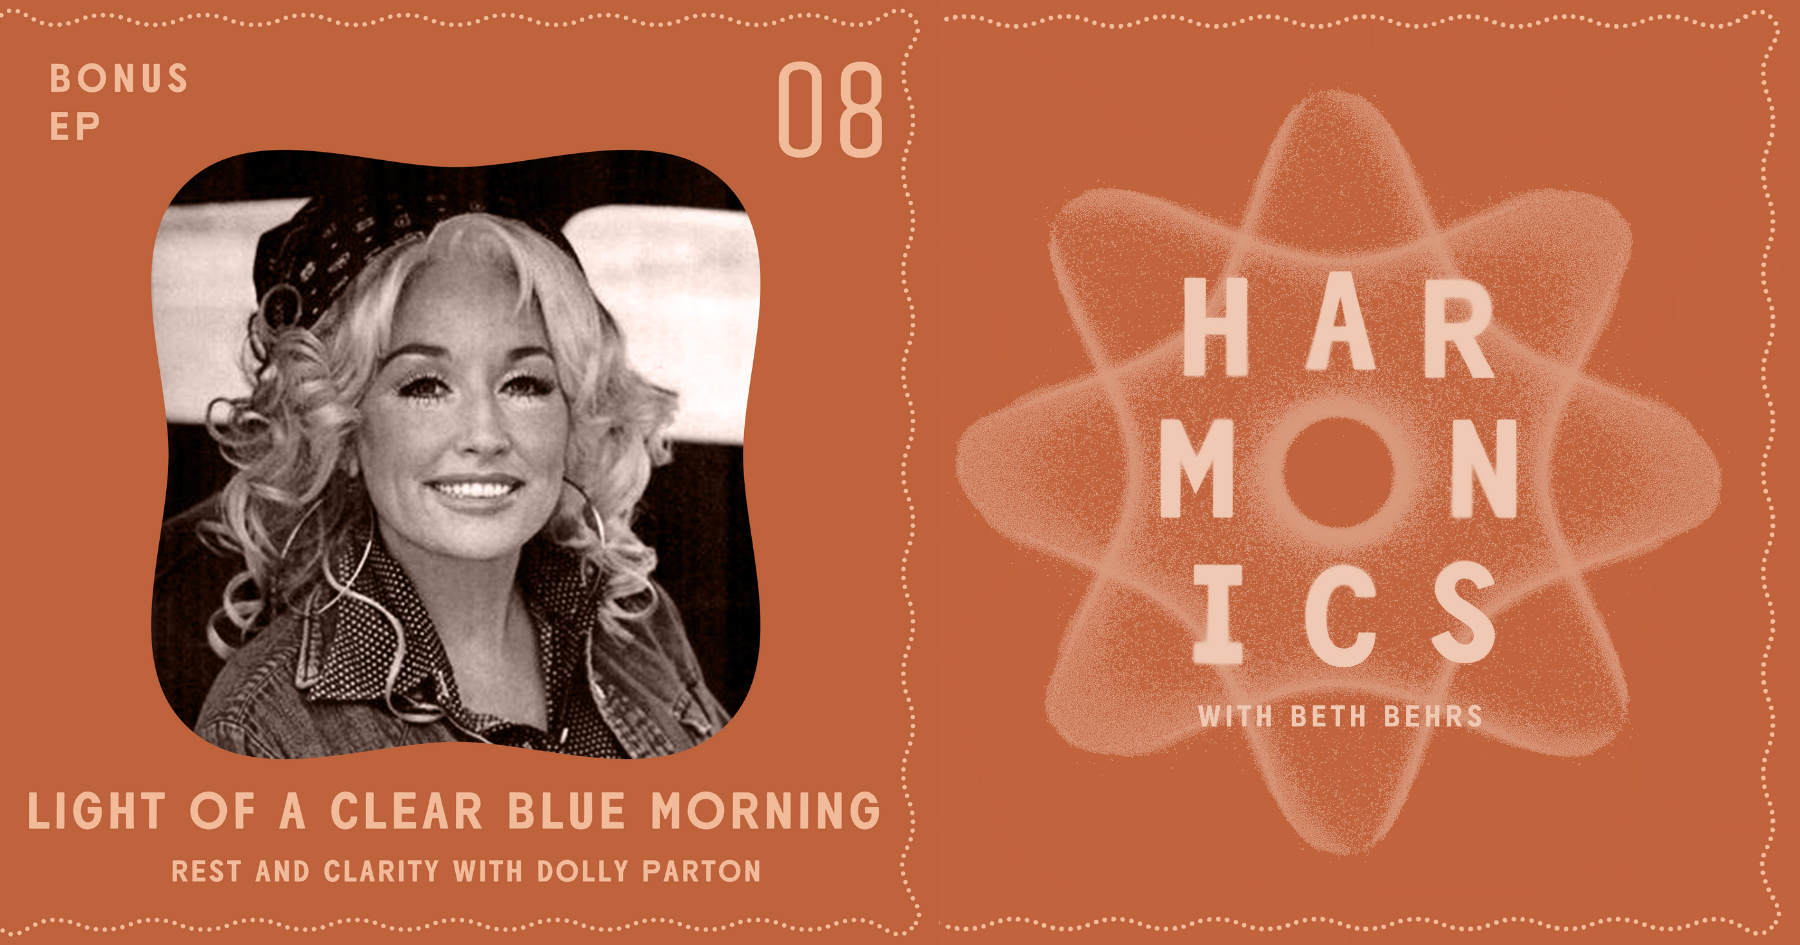 Harmonics with Beth Behrs: Light of a Clear Blue Morning - Rest and Clarity with Dolly Parton